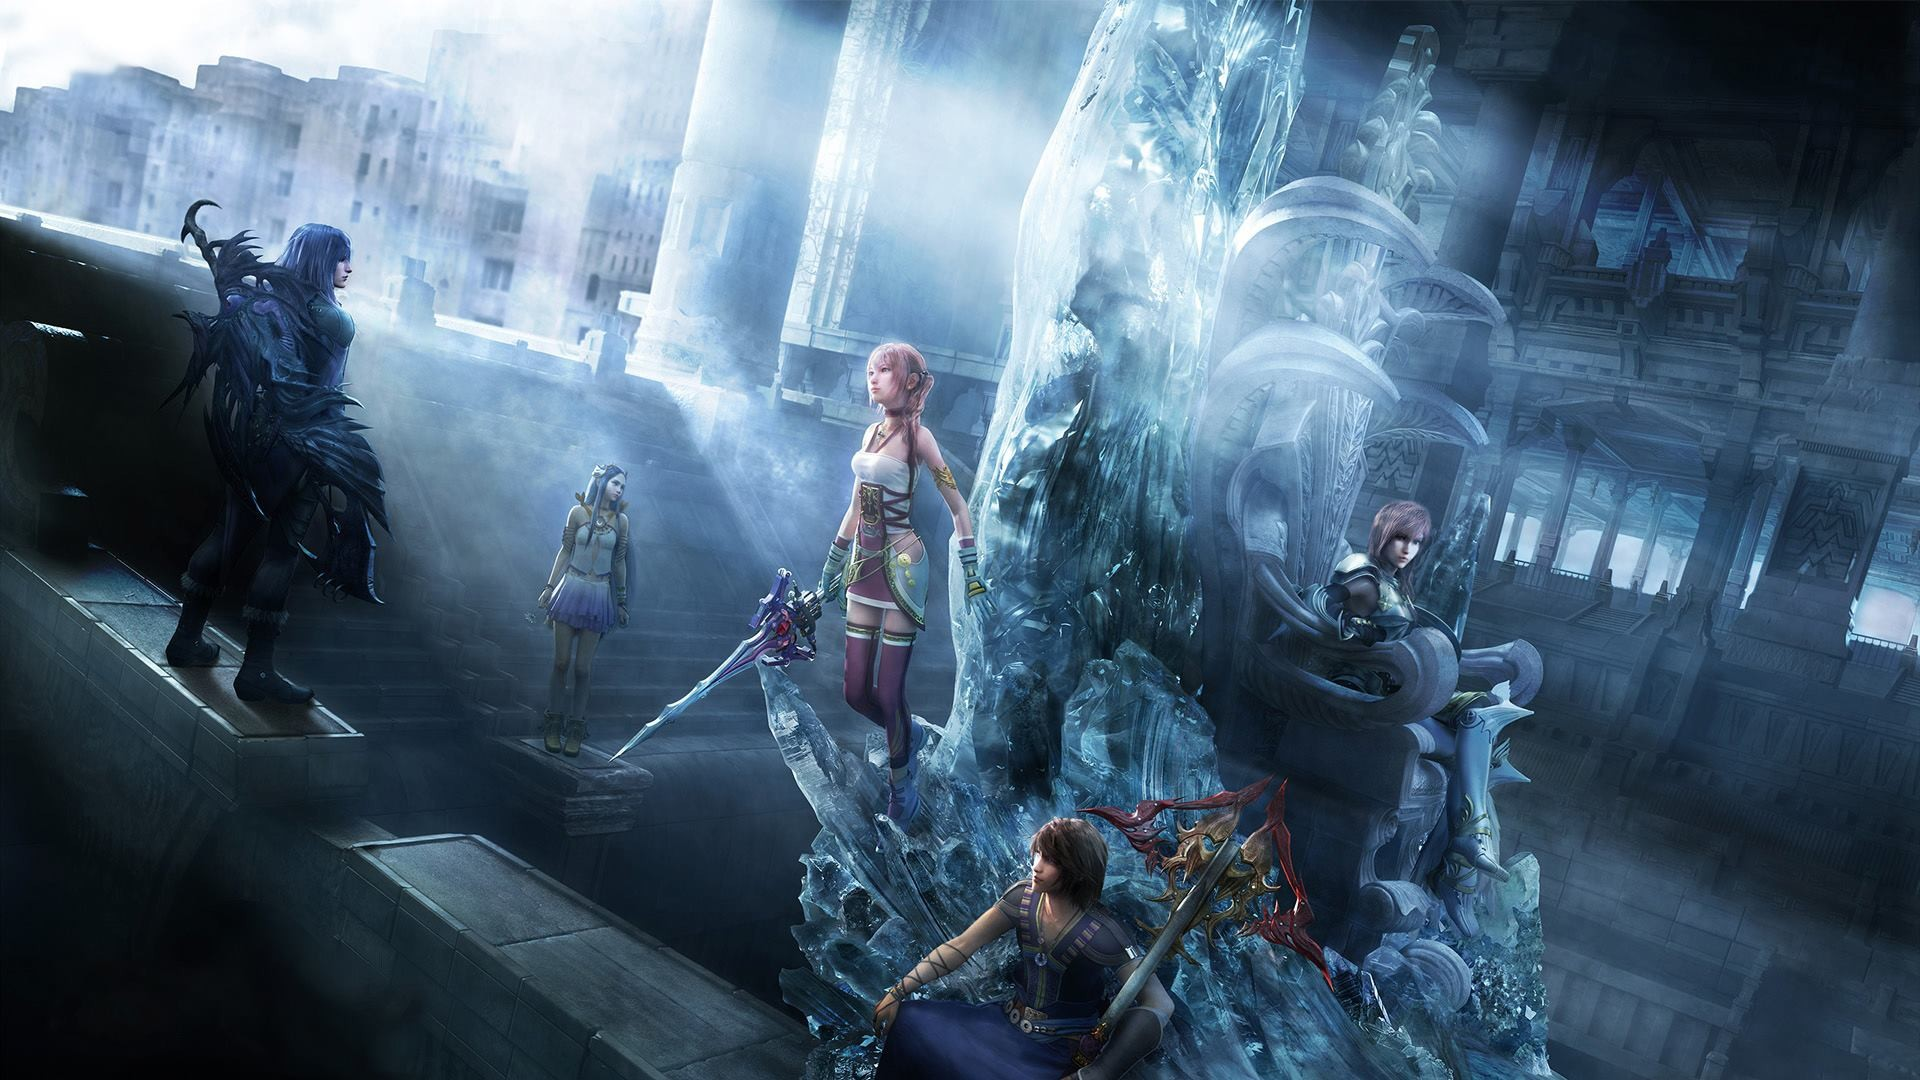 final fantasy wallpaper 1080p (75+ images)